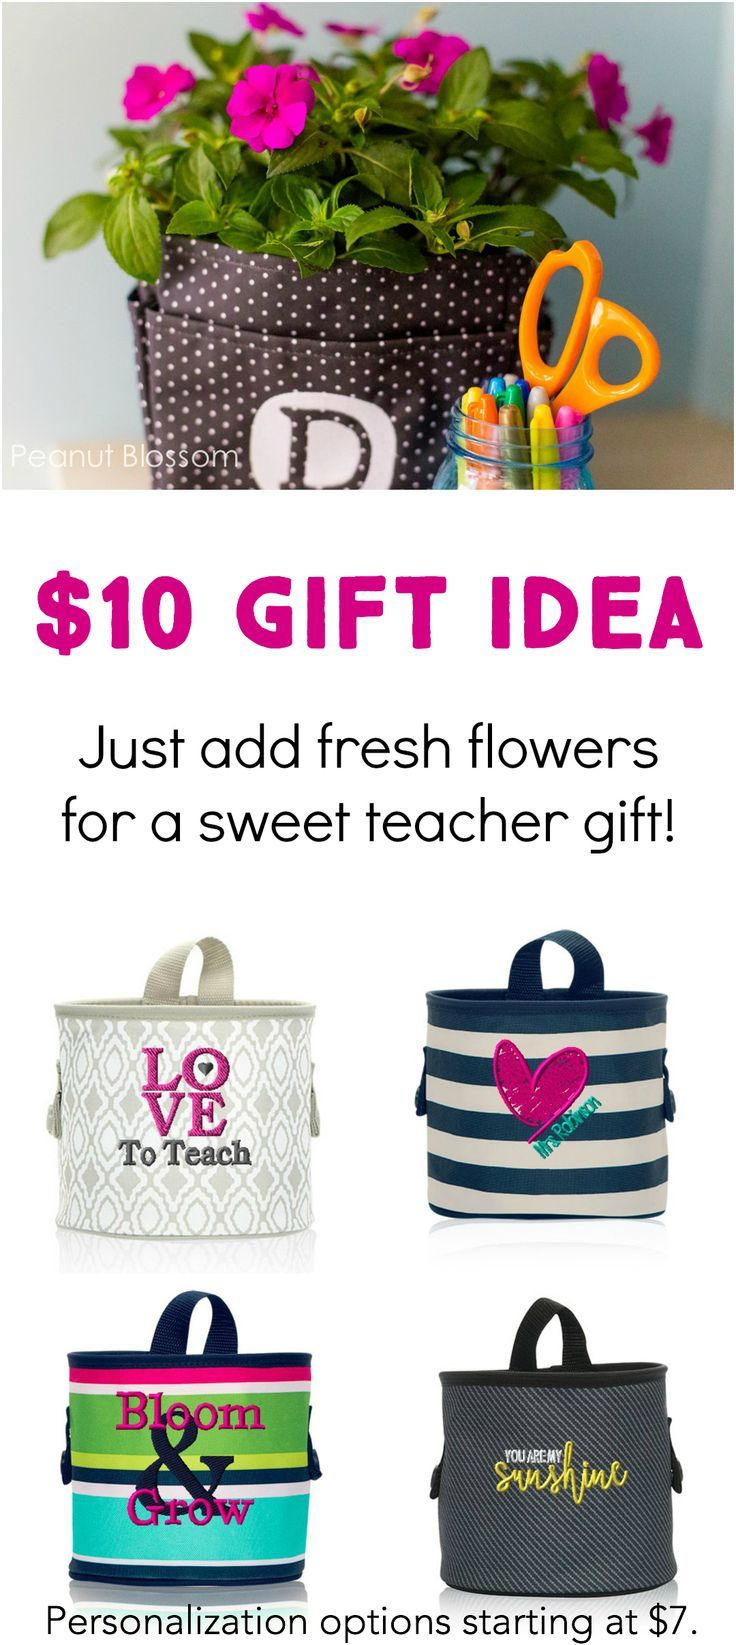 Oh snap bin ideas - What An Adorable Teacher Appreciation Gift Idea For Just 10 So Simple And Affordable